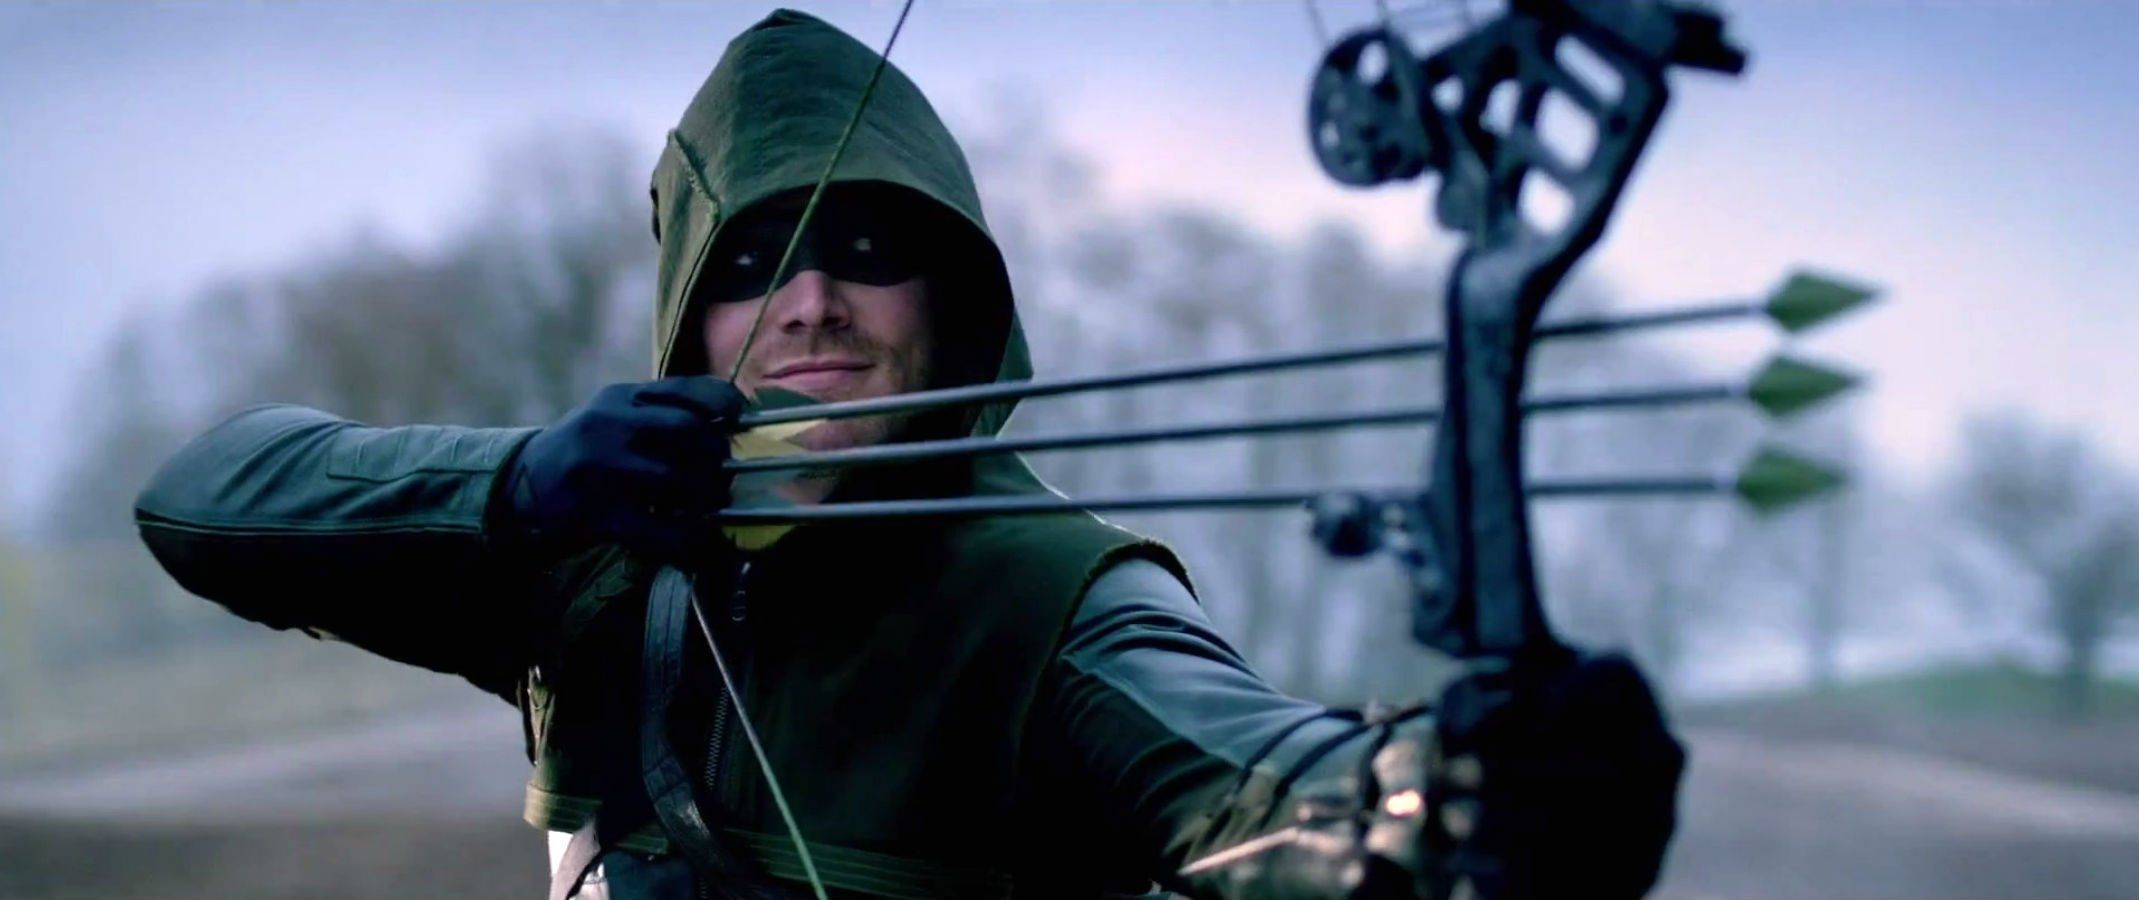 Arrow Wallpaper HD Background Download Desktop IPhones Wallpapers 1024x768 53